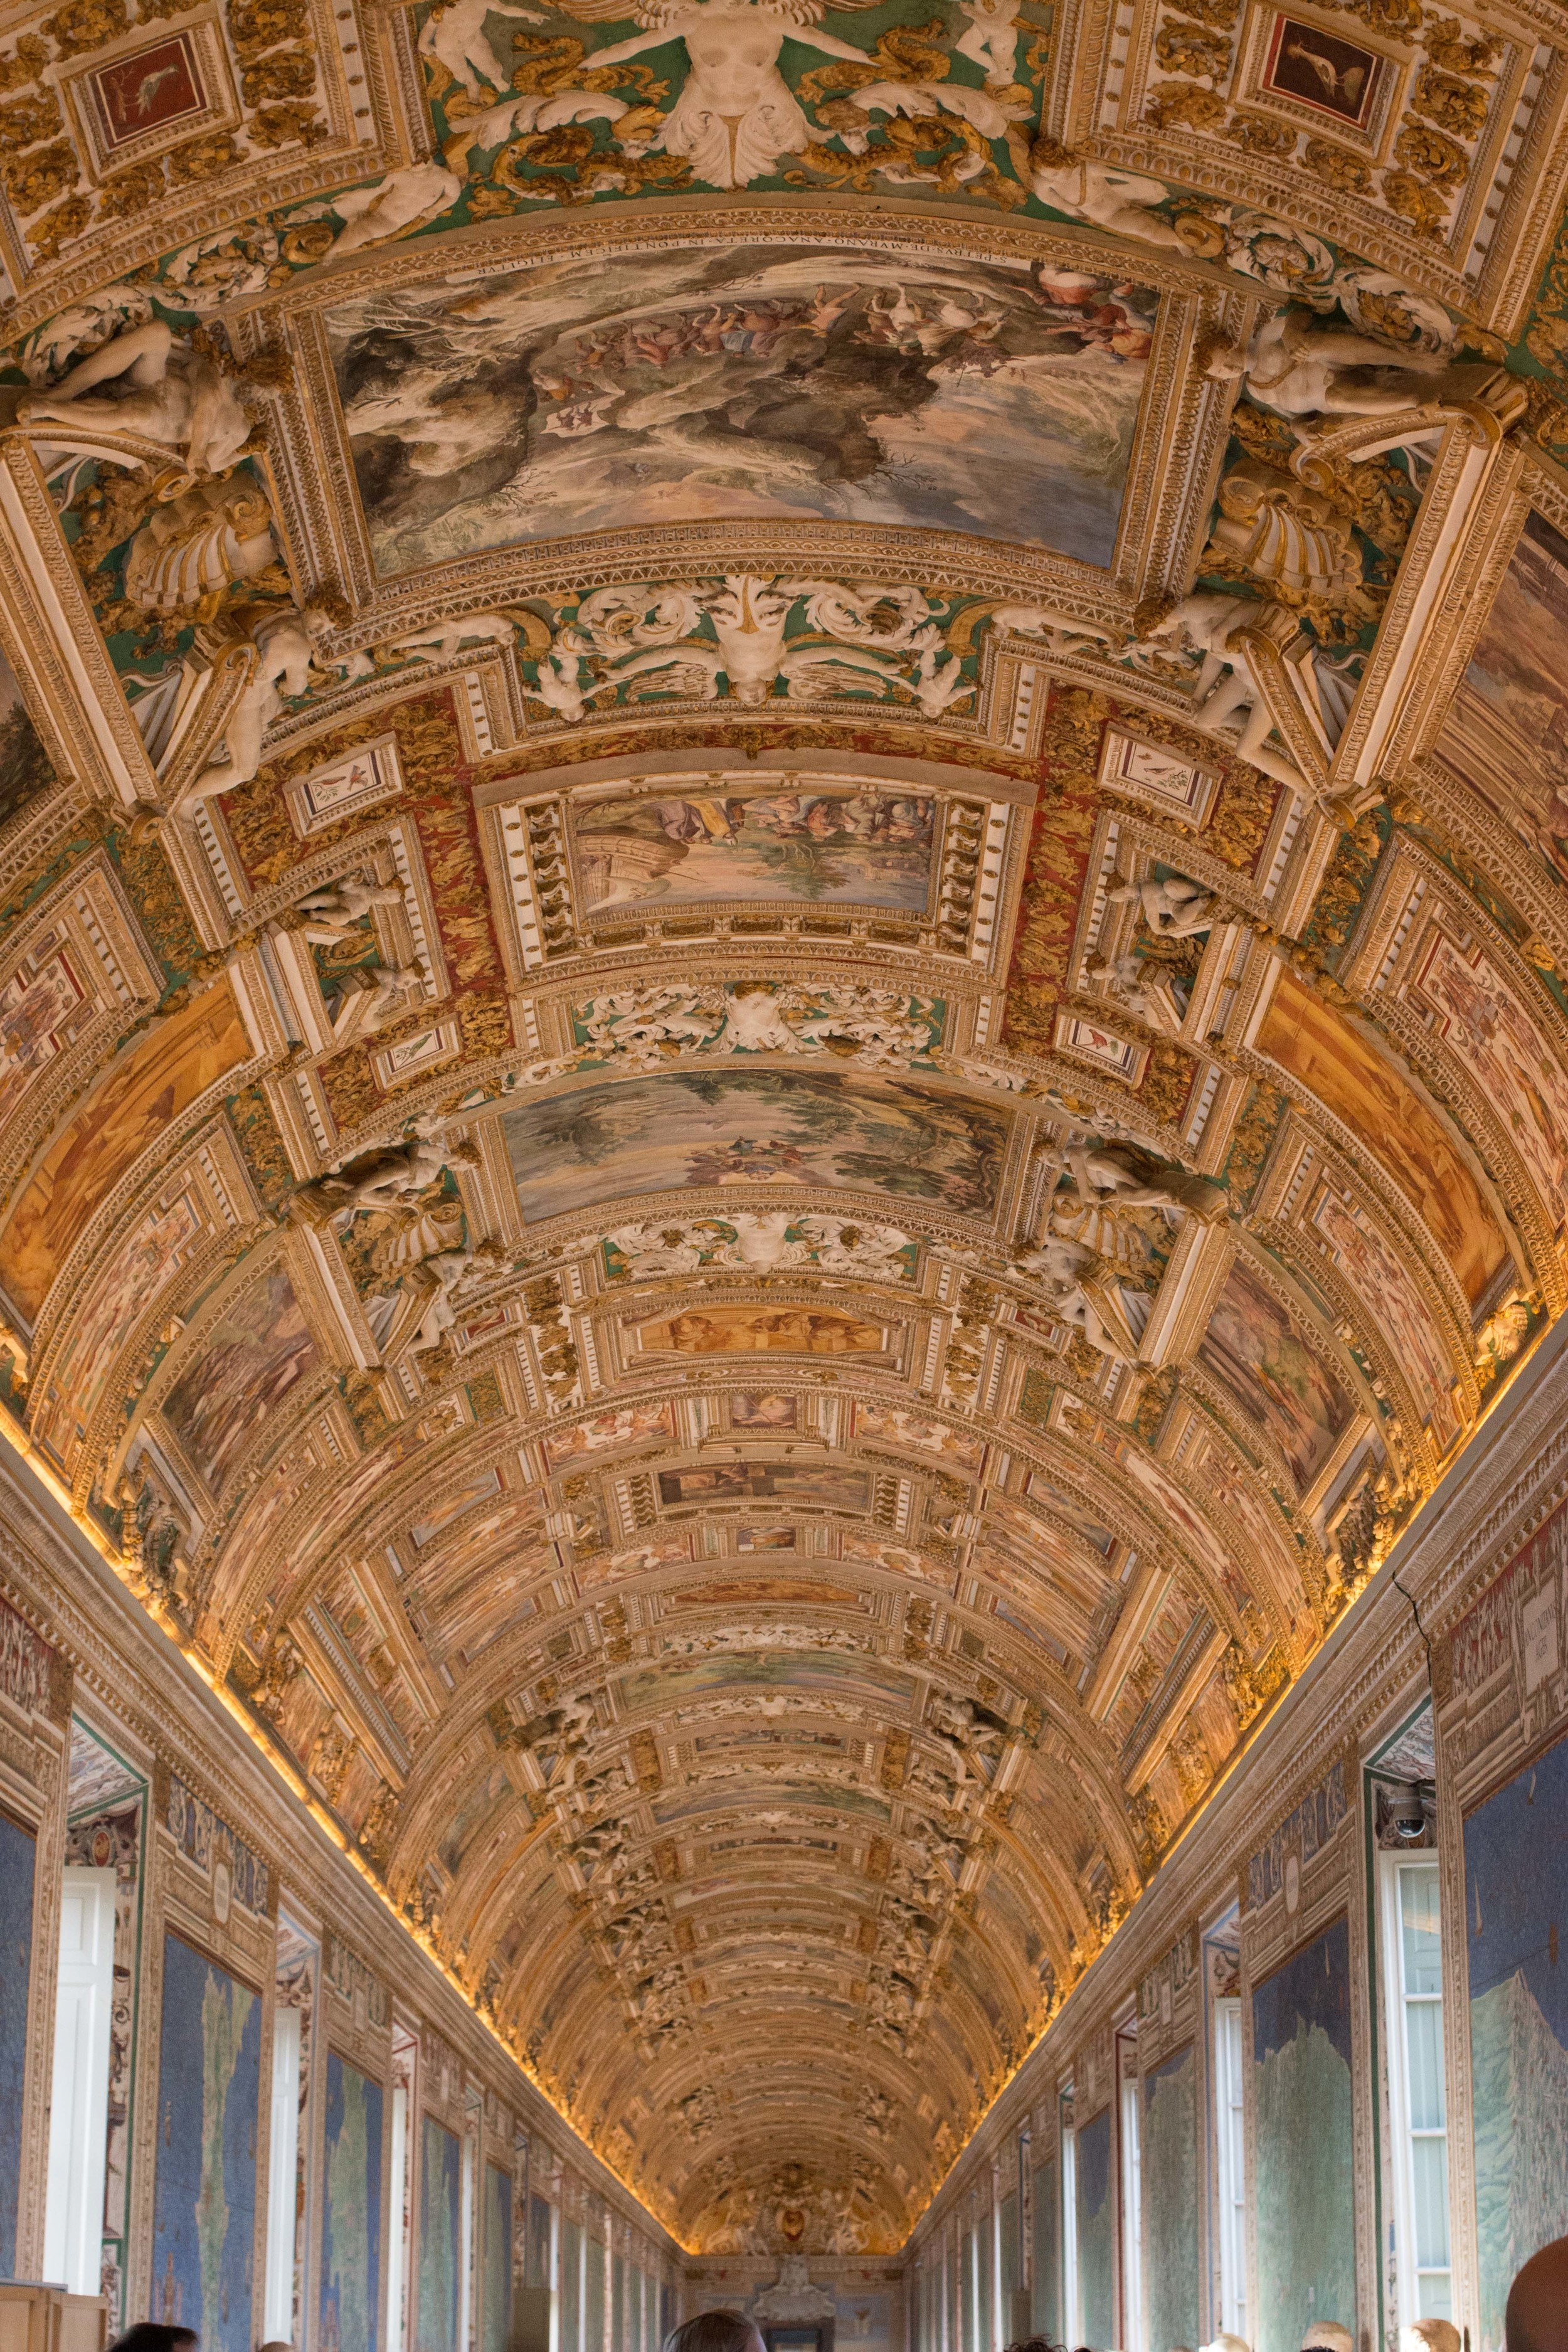 Gallery of Maps in the Vatican Museums